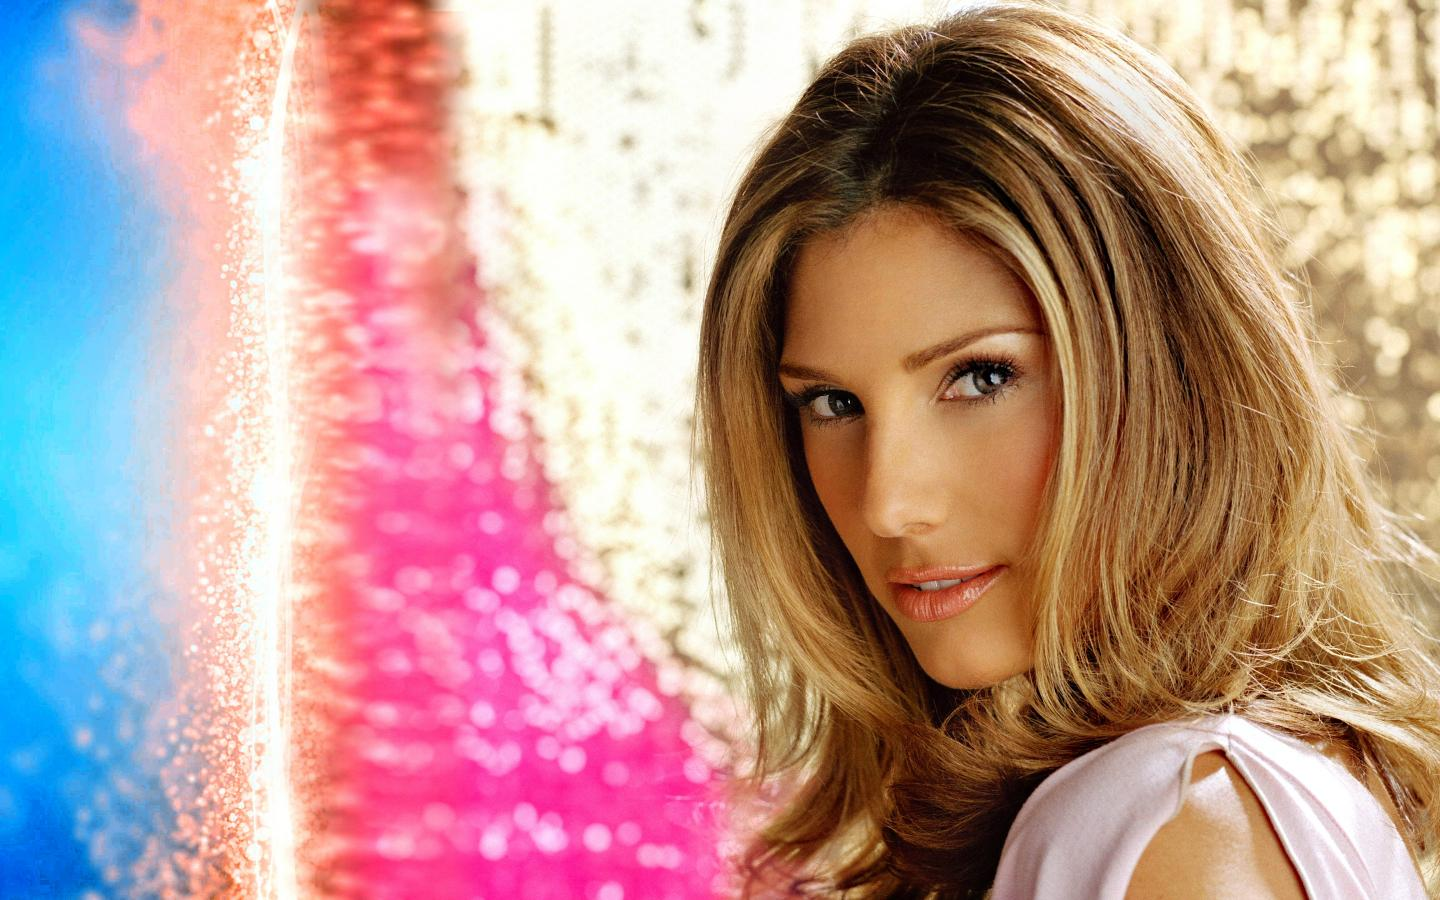 1440x900 - Daisy Fuentes Wallpapers 18